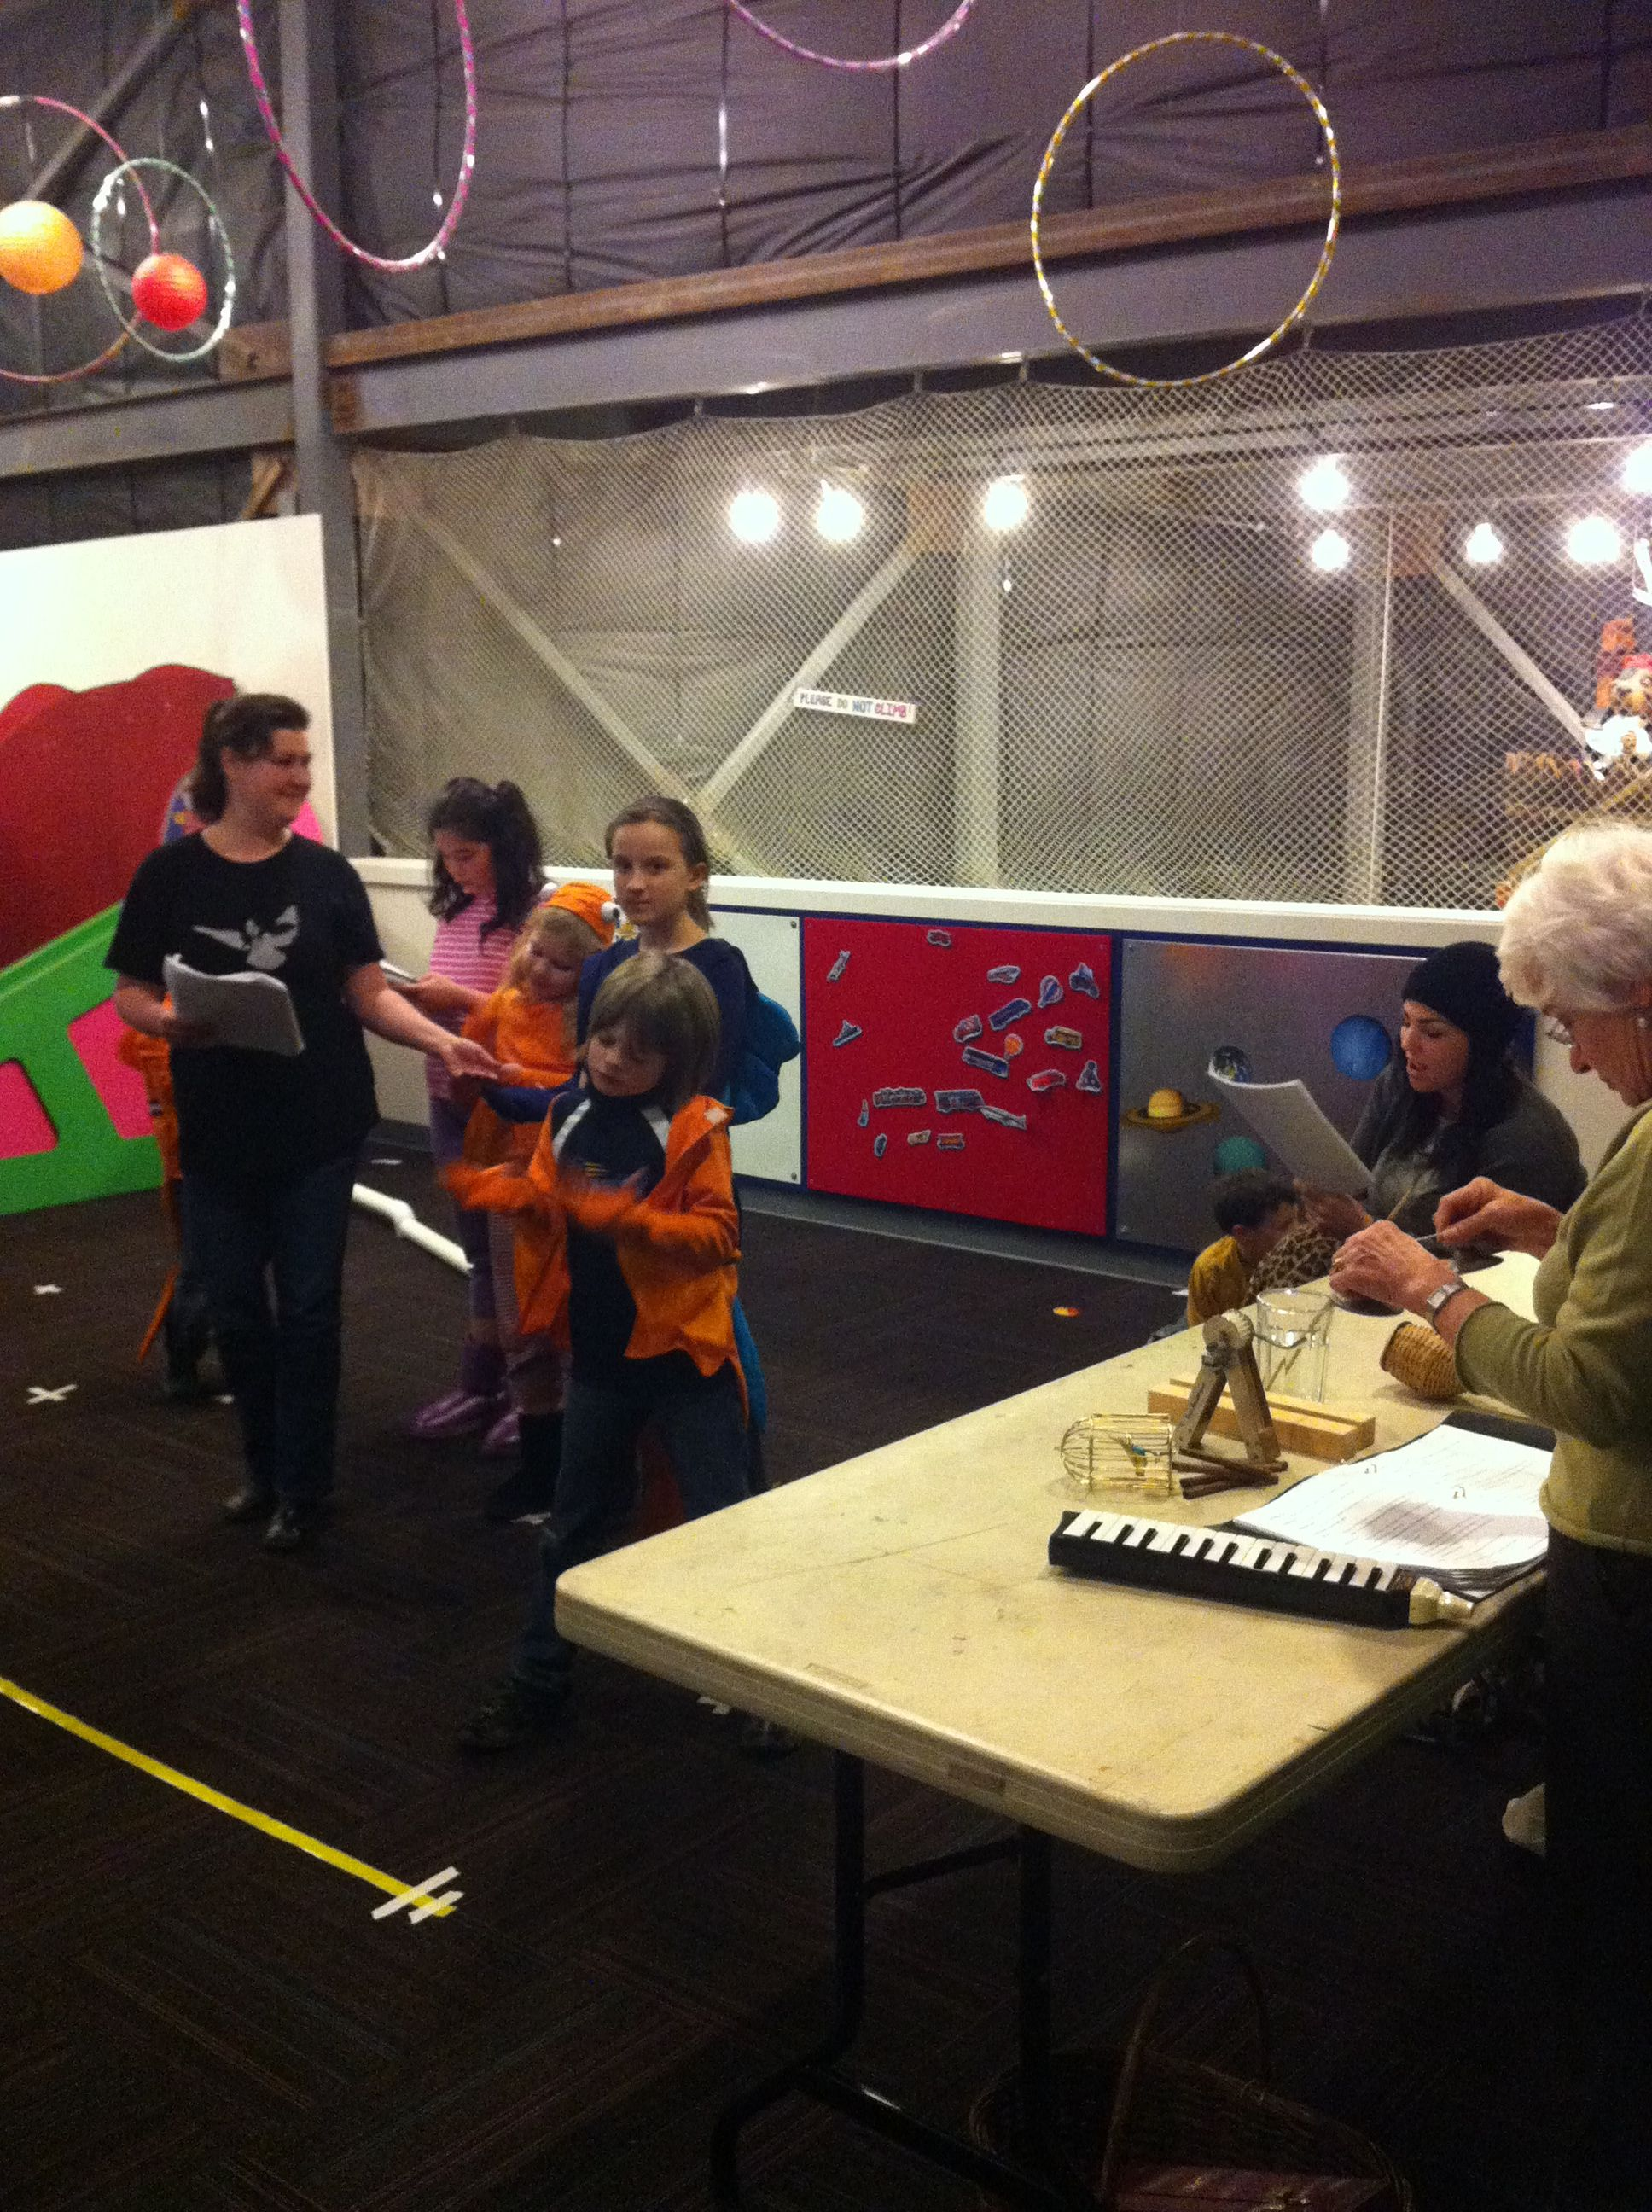 Rehearsal Space For Biss Provided In Kind By The Kids